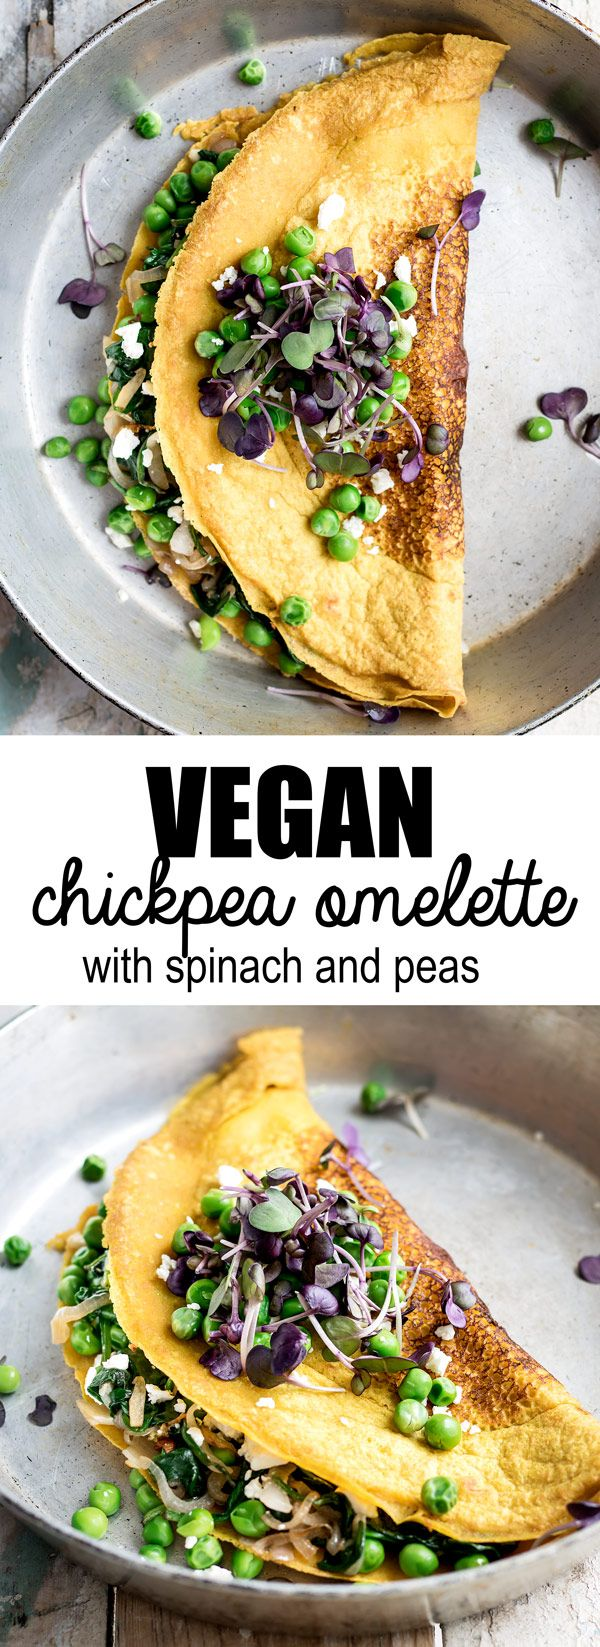 Chickpea omelette with spinach and spring peas [vegan+gluten-free]